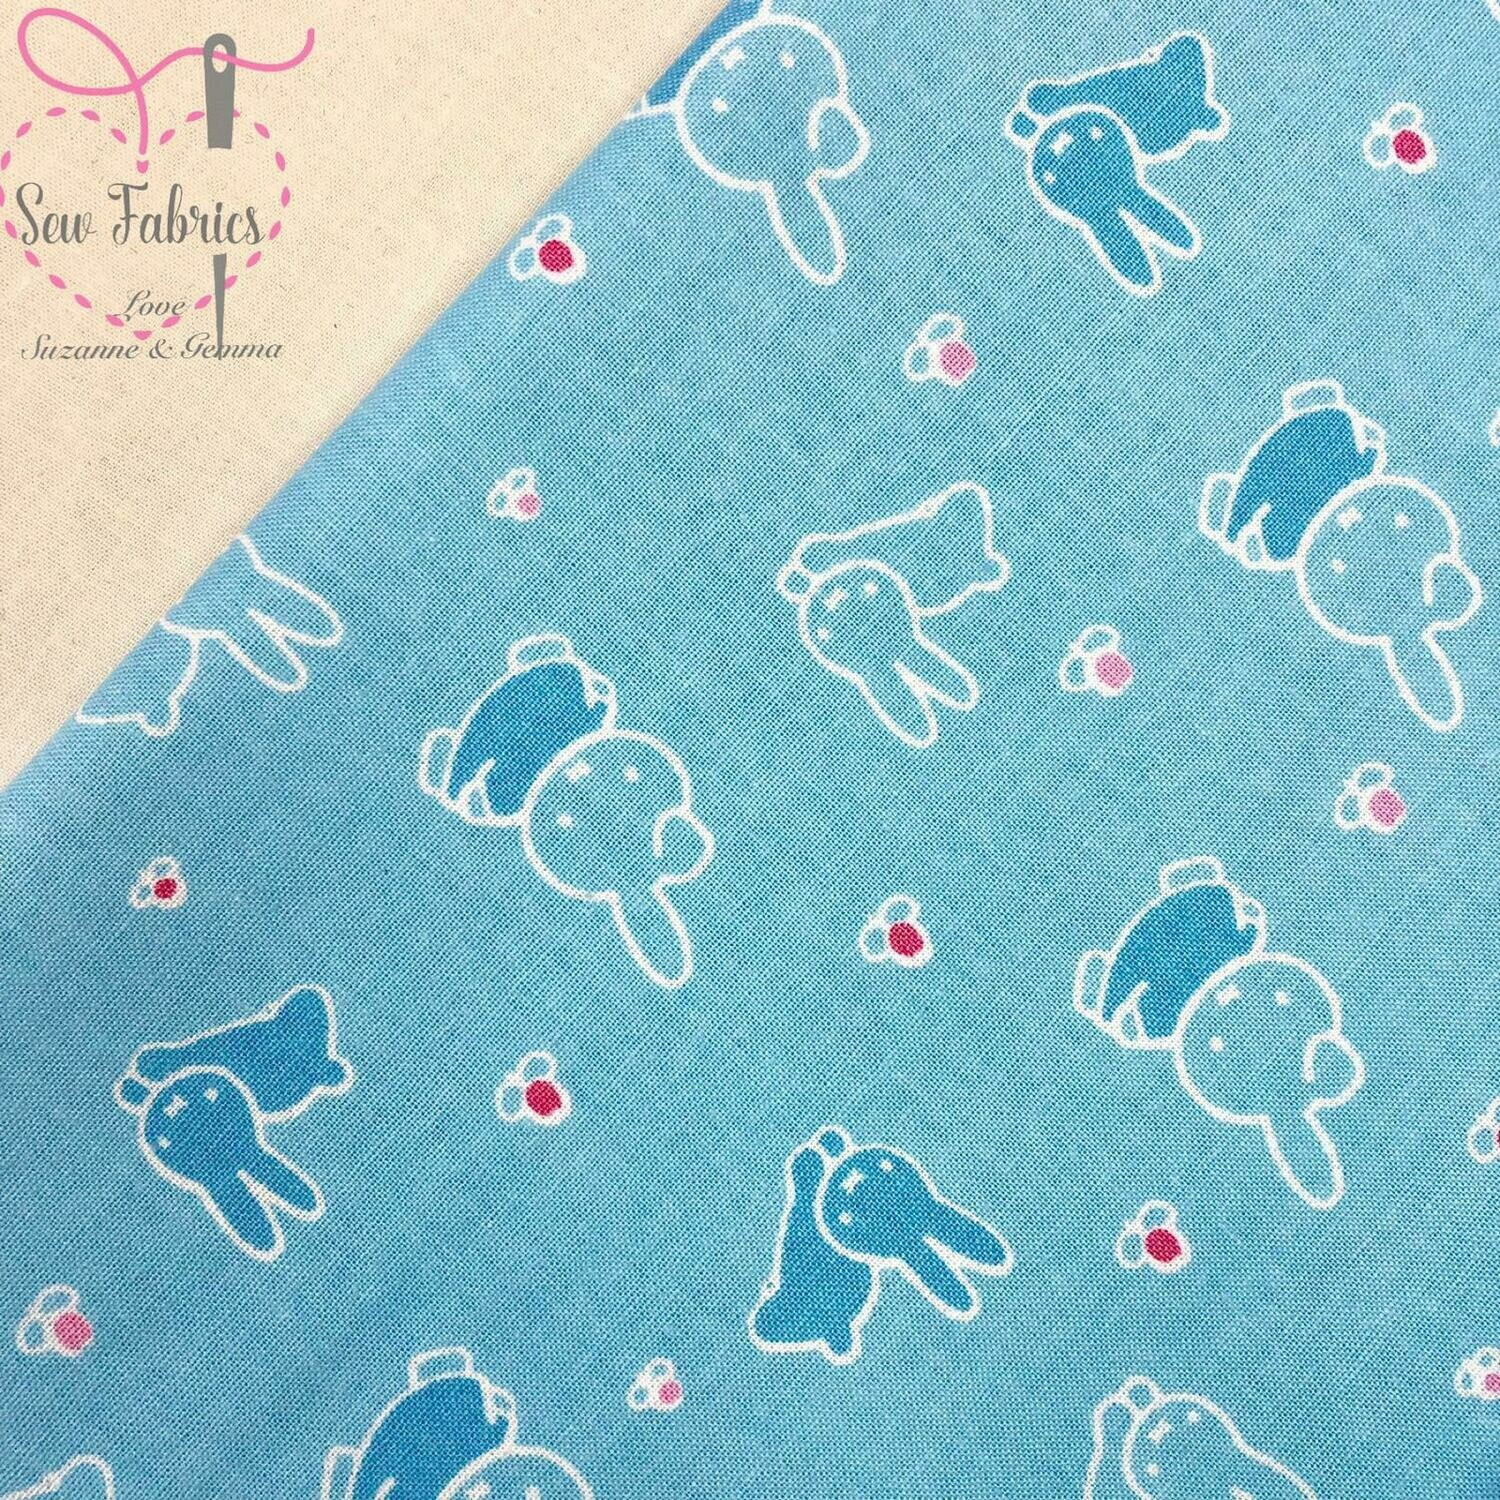 Miffy Fabric with Bunnies Blue 100% Cotton Licensed